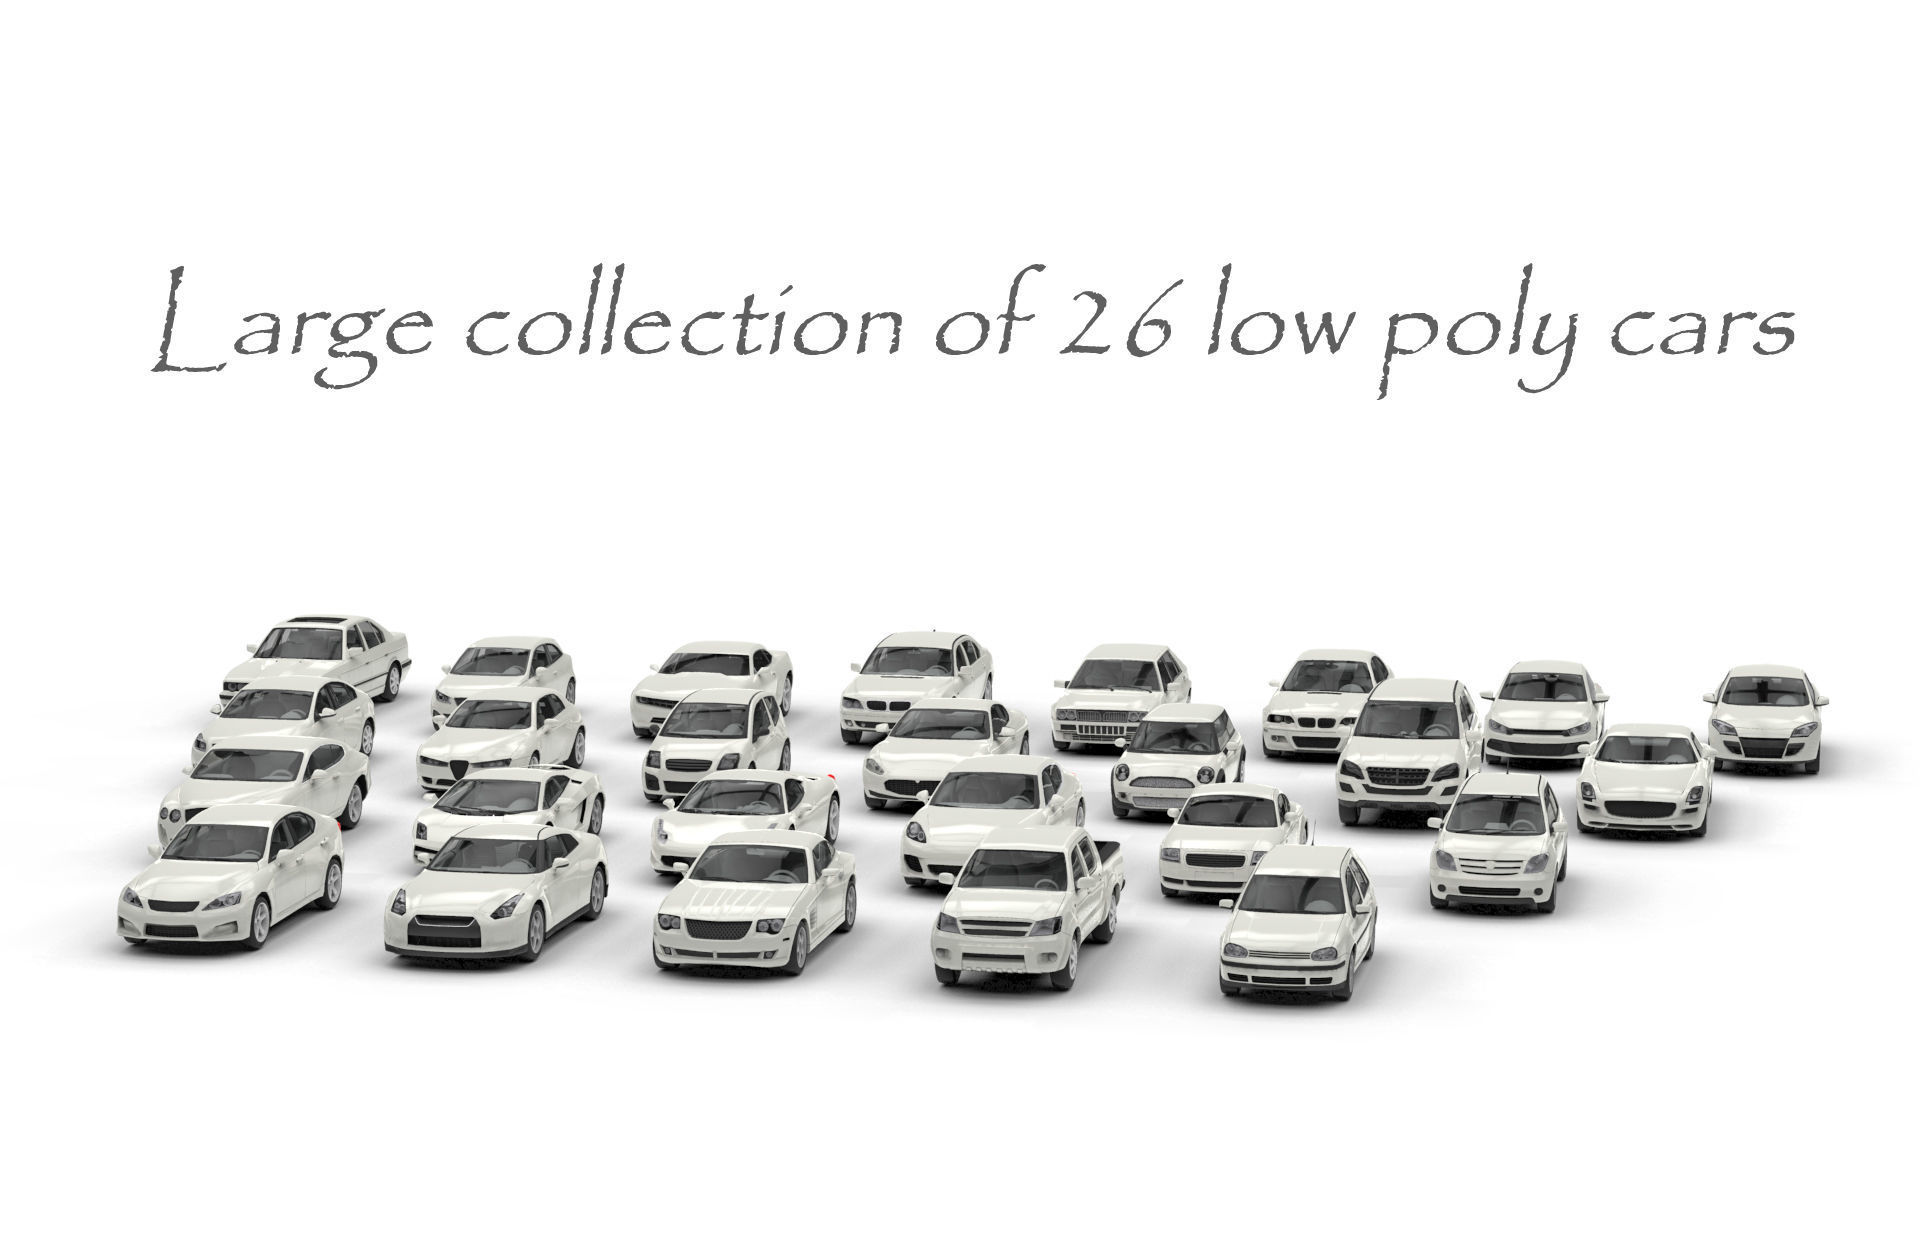 Large collection of 26 low poly cars